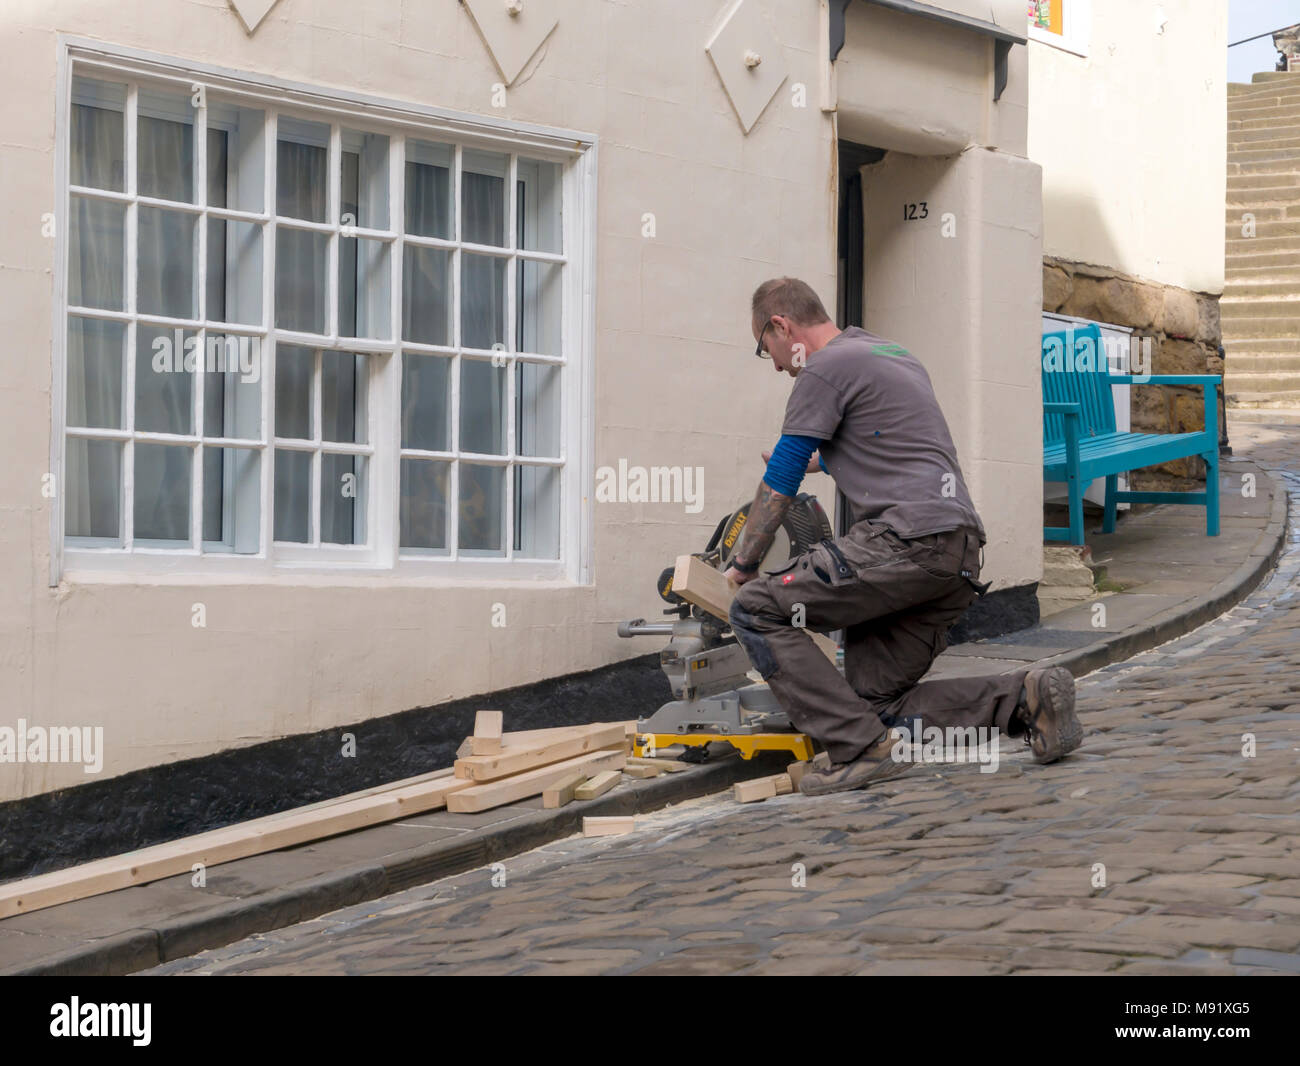 Carpenter refurbishing a cottage using a woodworking electric power saw to cut timber to size on the pavement outside - Stock Image